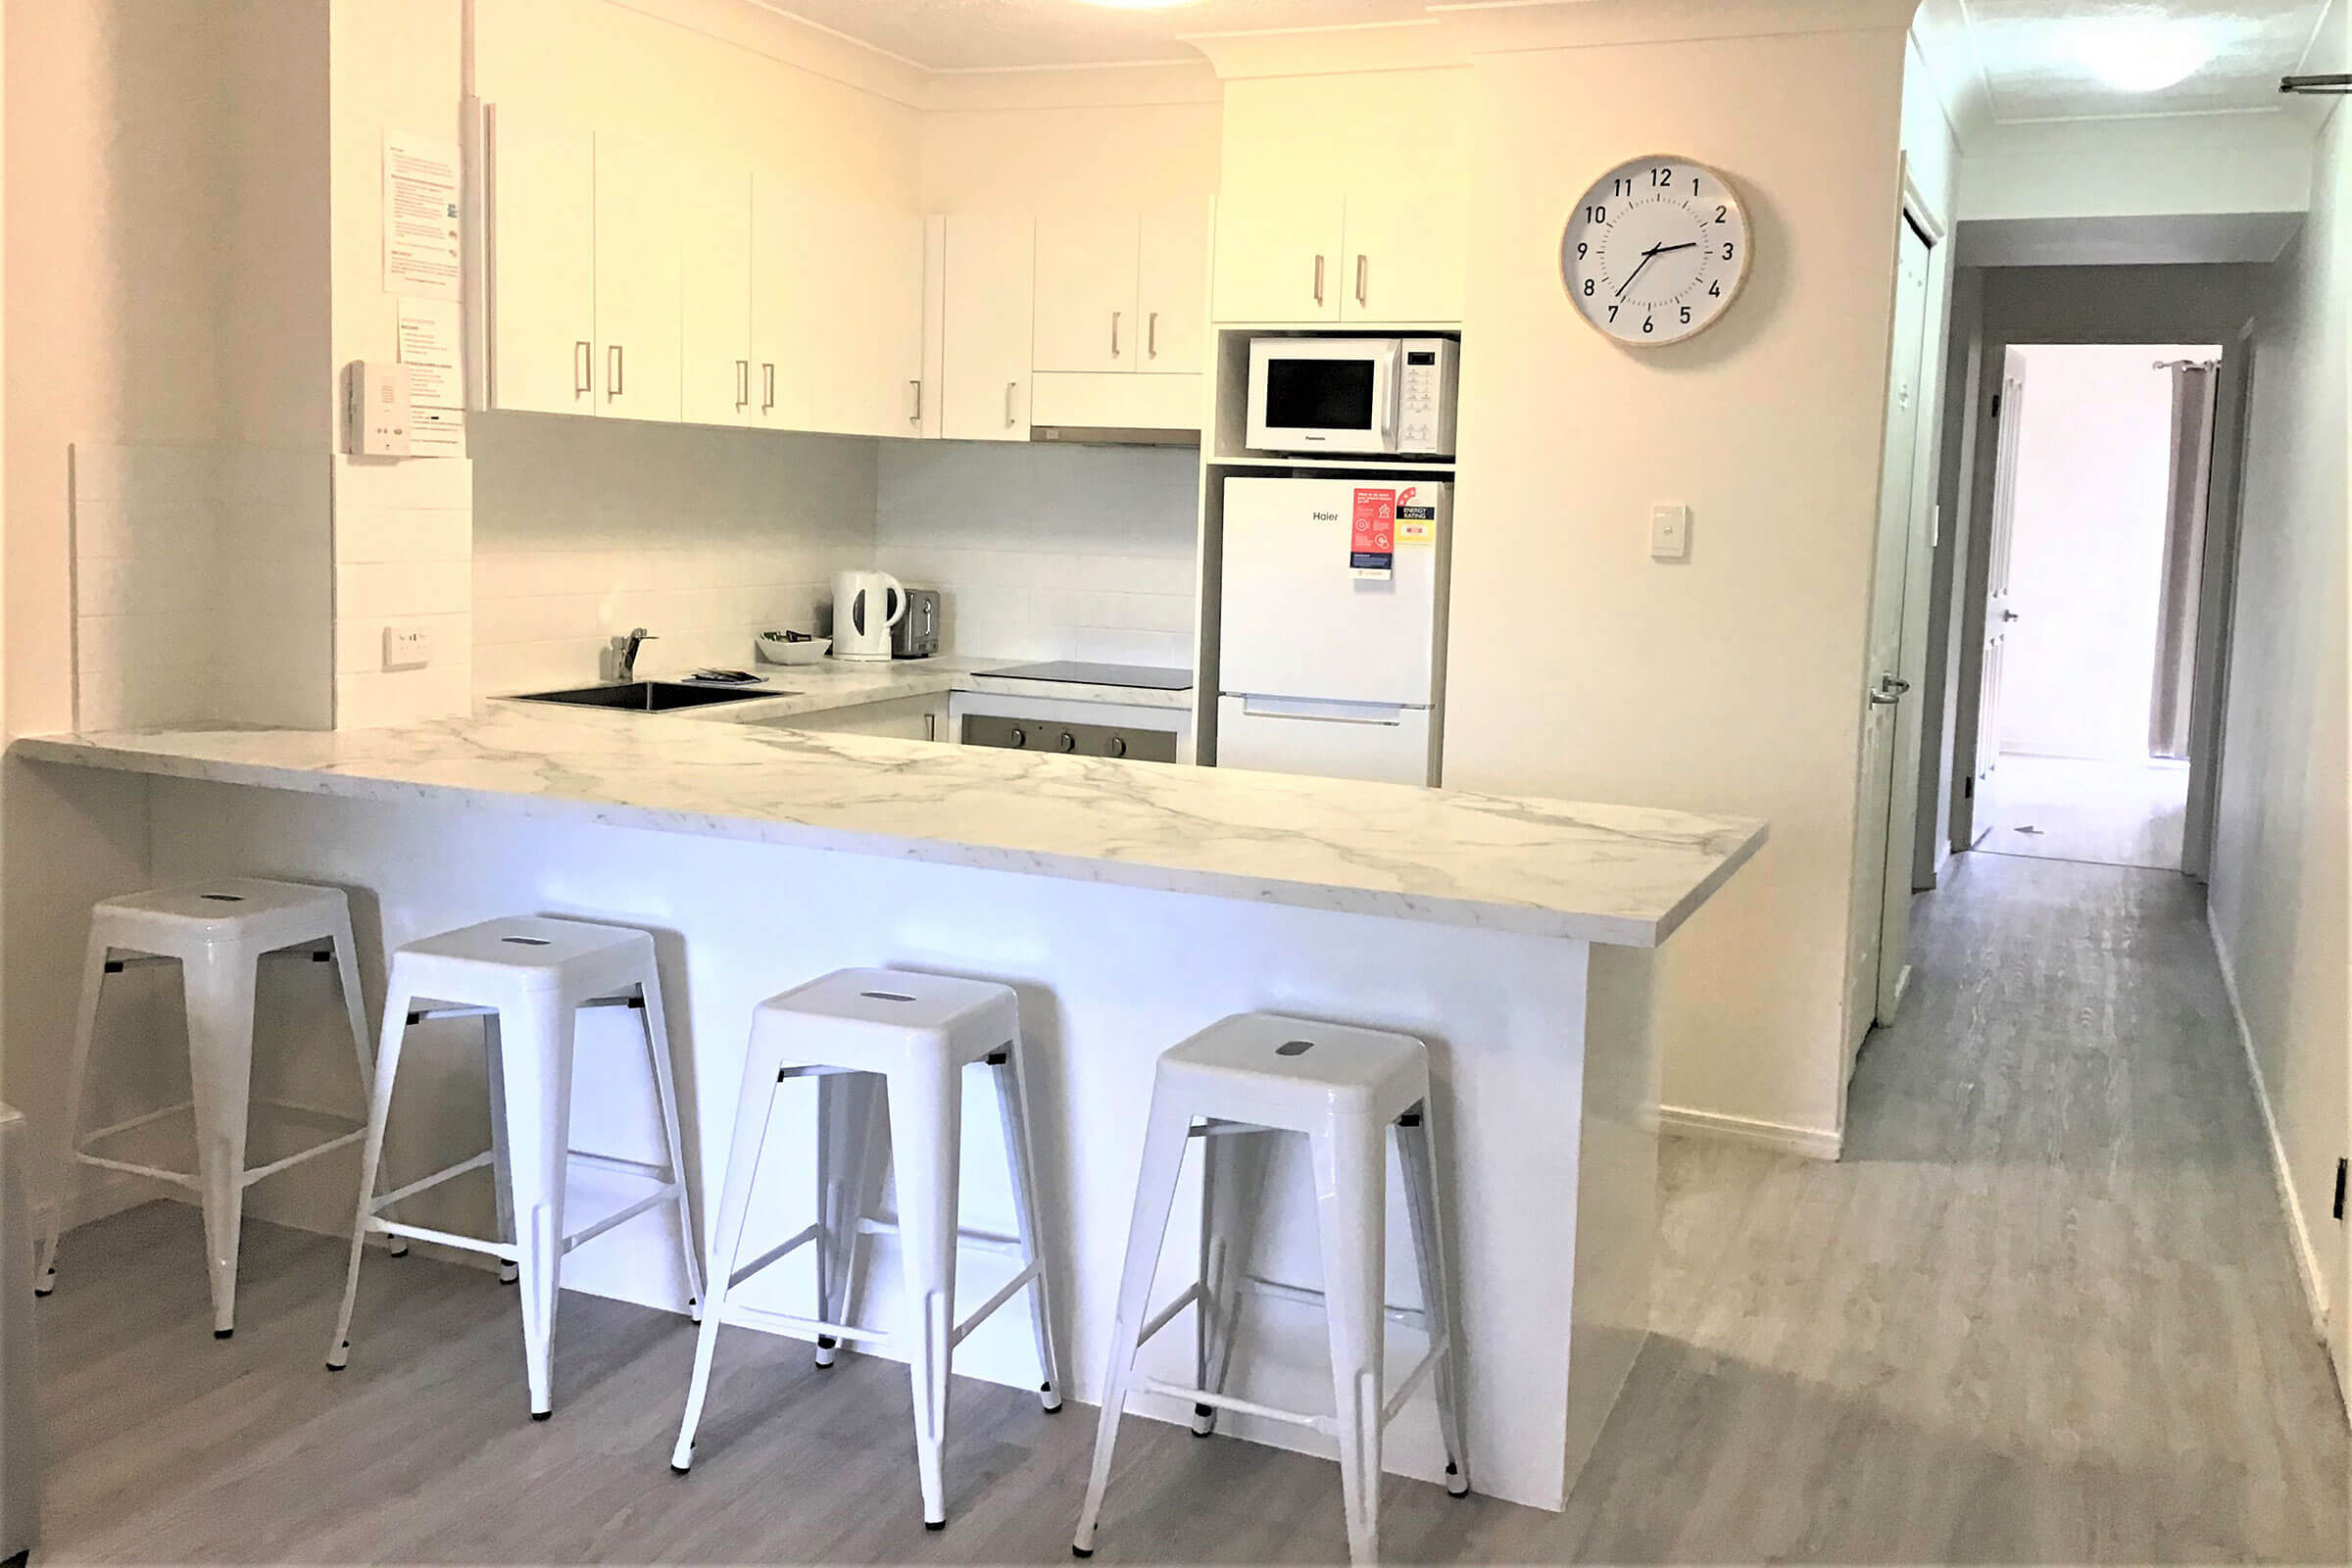 Beaches-on-Wave-3-Bedroom-Apartment-kitchen